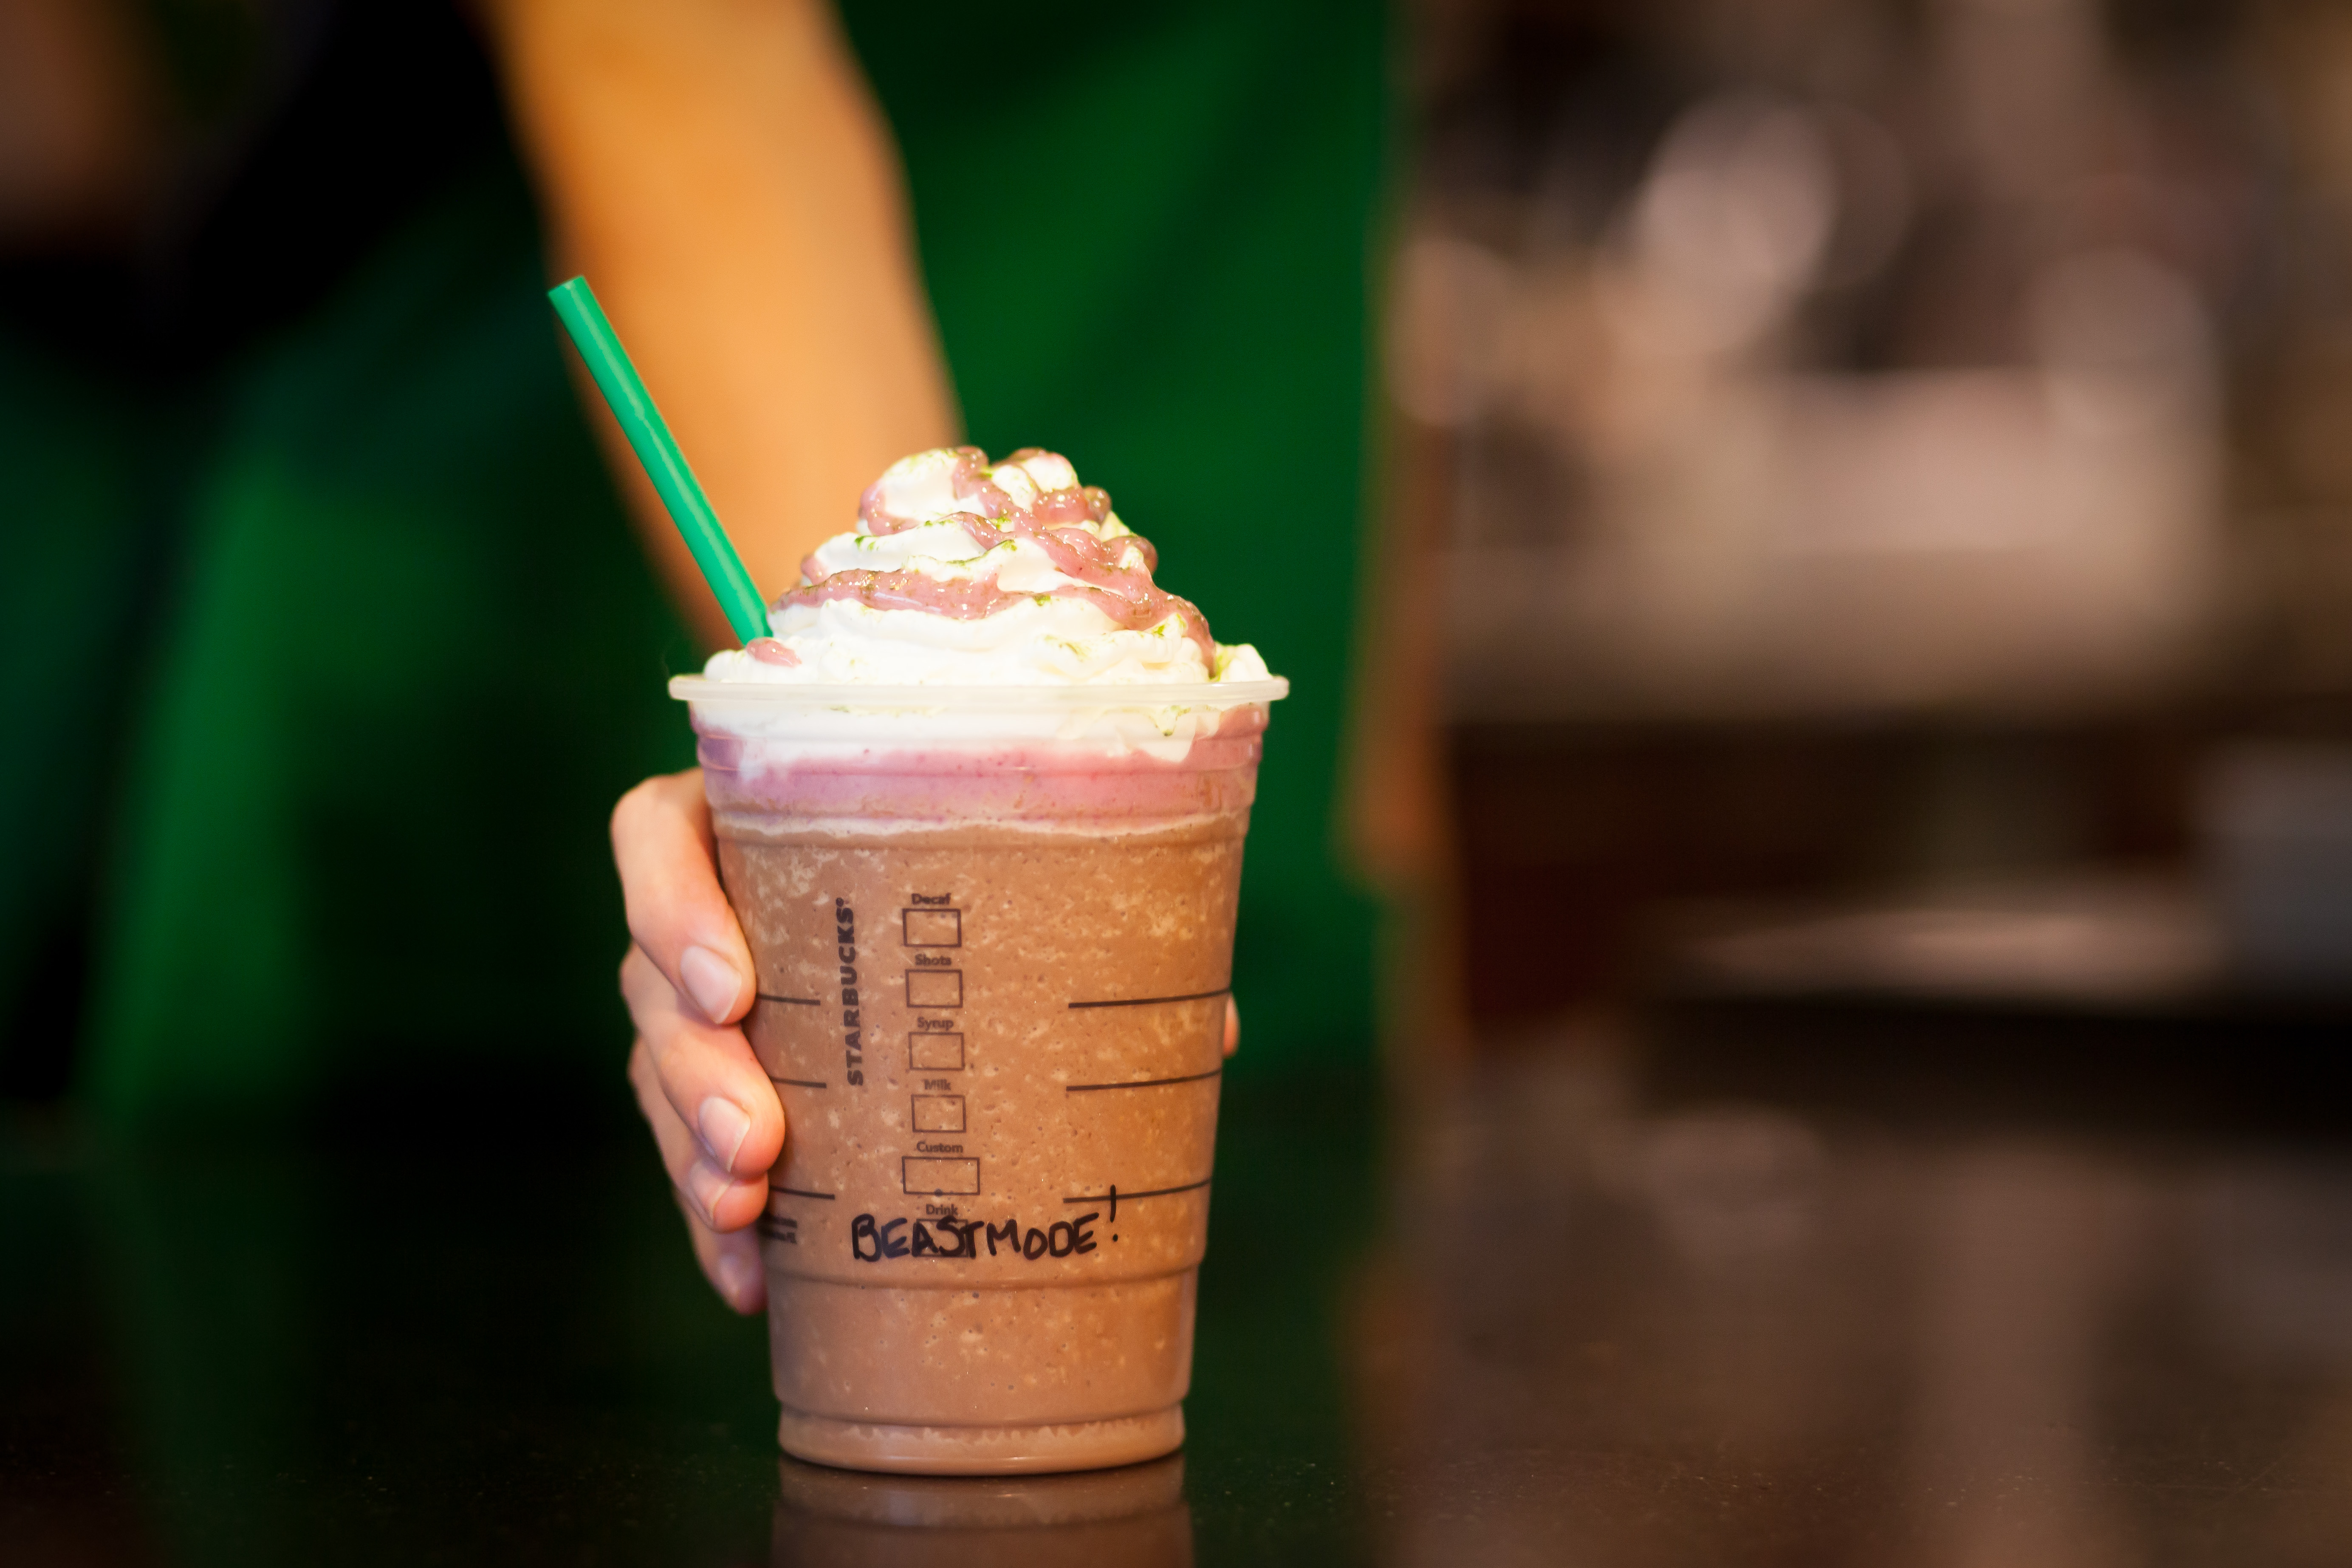 NFL football player Marshawn Lynch, of the Seattle Seahawks,  teamed up with Starbucks to introduce the Beast Mode Frappuccino blended beverage, to be sold during the rest of the football season in Starbucks stores in Washington state and Oakland to benefit his foundation.